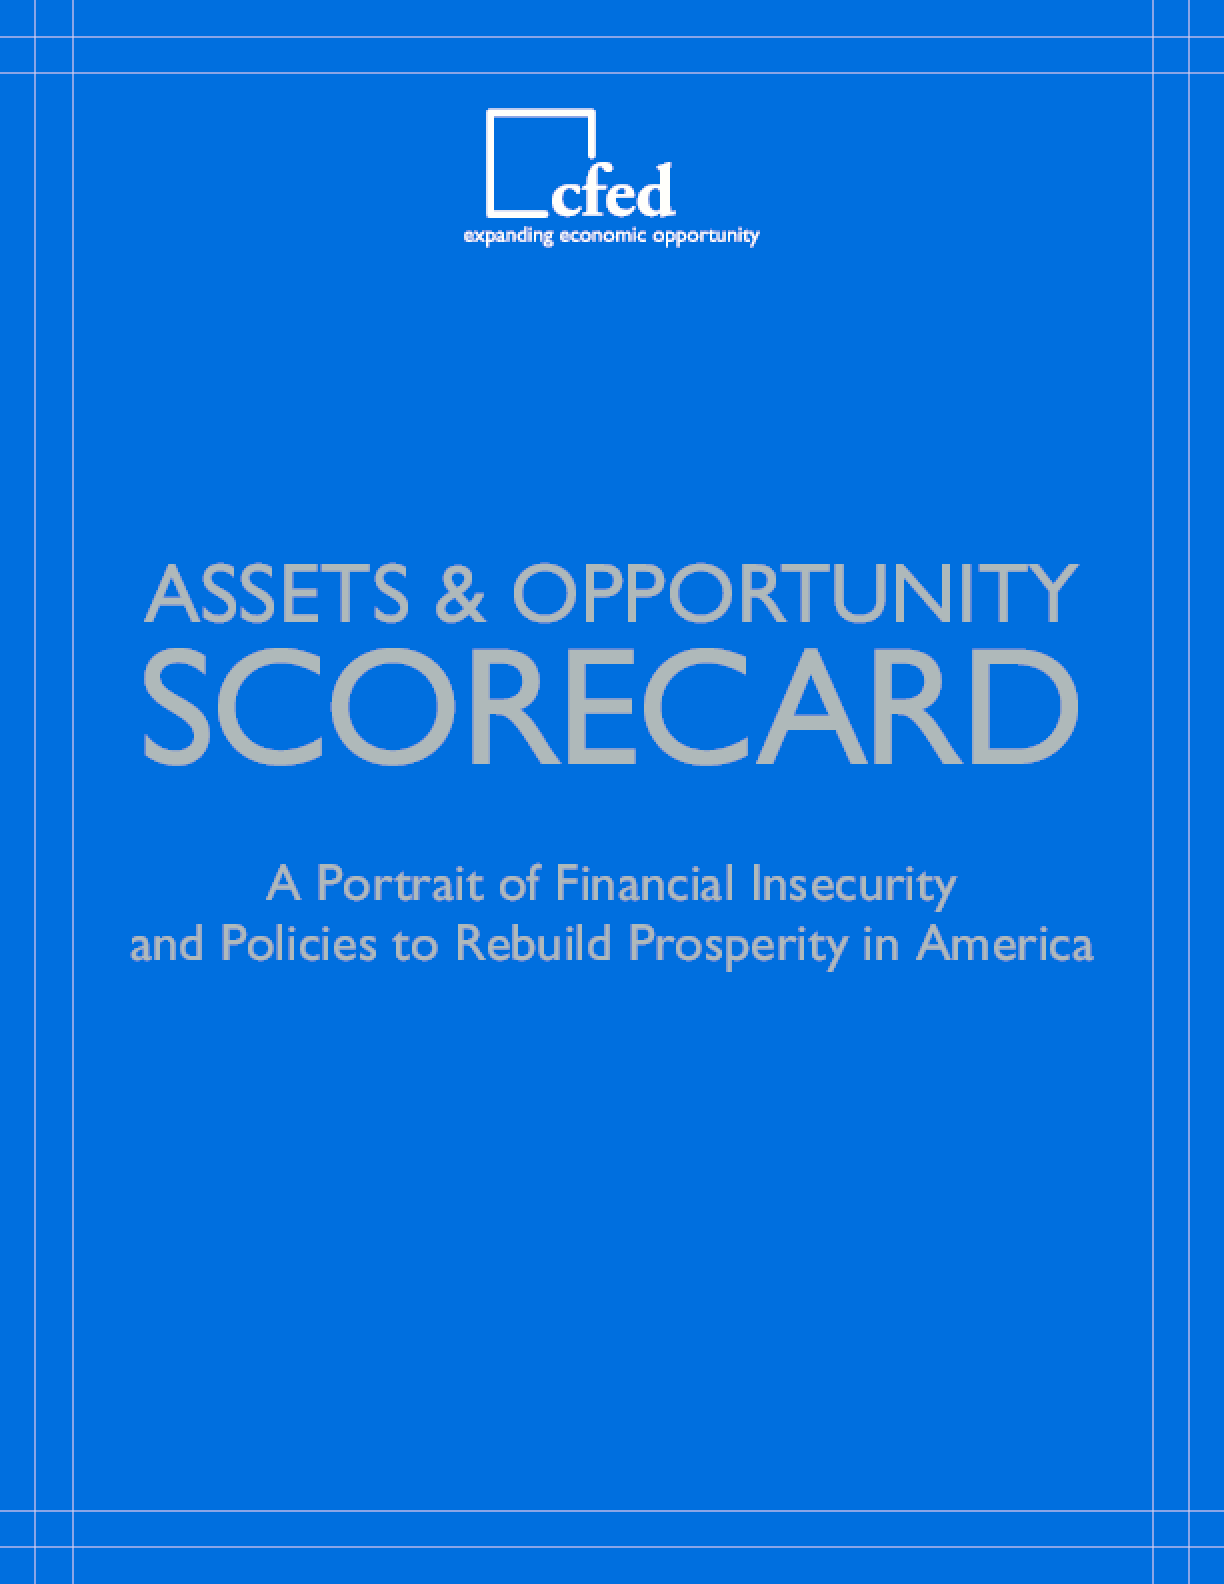 2012 Assets & Opportunity Scorecard: A Portrait of Financial Insecurity and Policies to Rebuild Prosperity in America